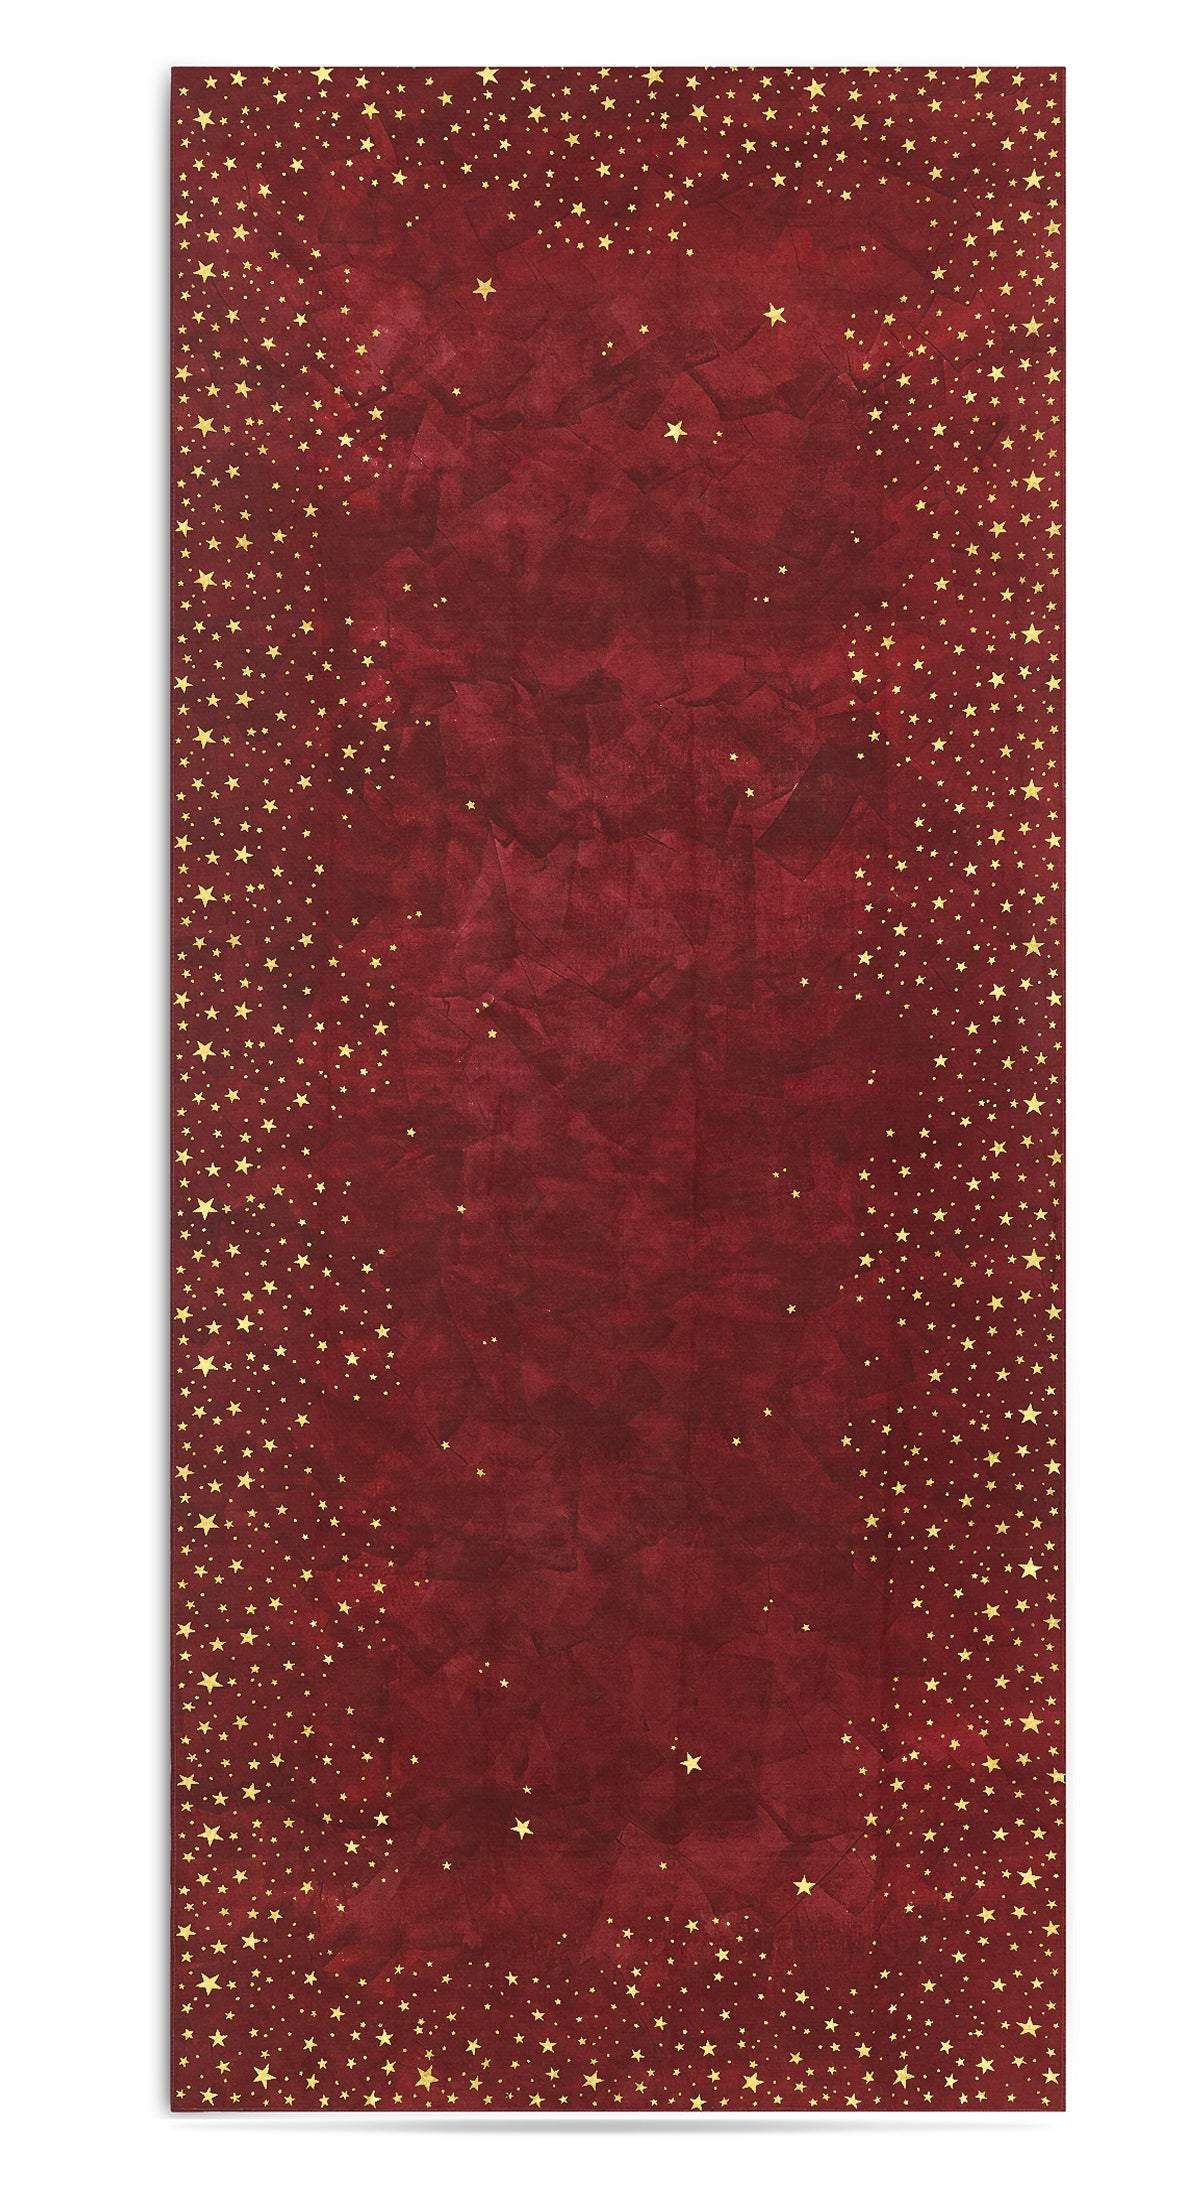 Falling Stars Linen Tablecloth in Claret Red with Gold Stars